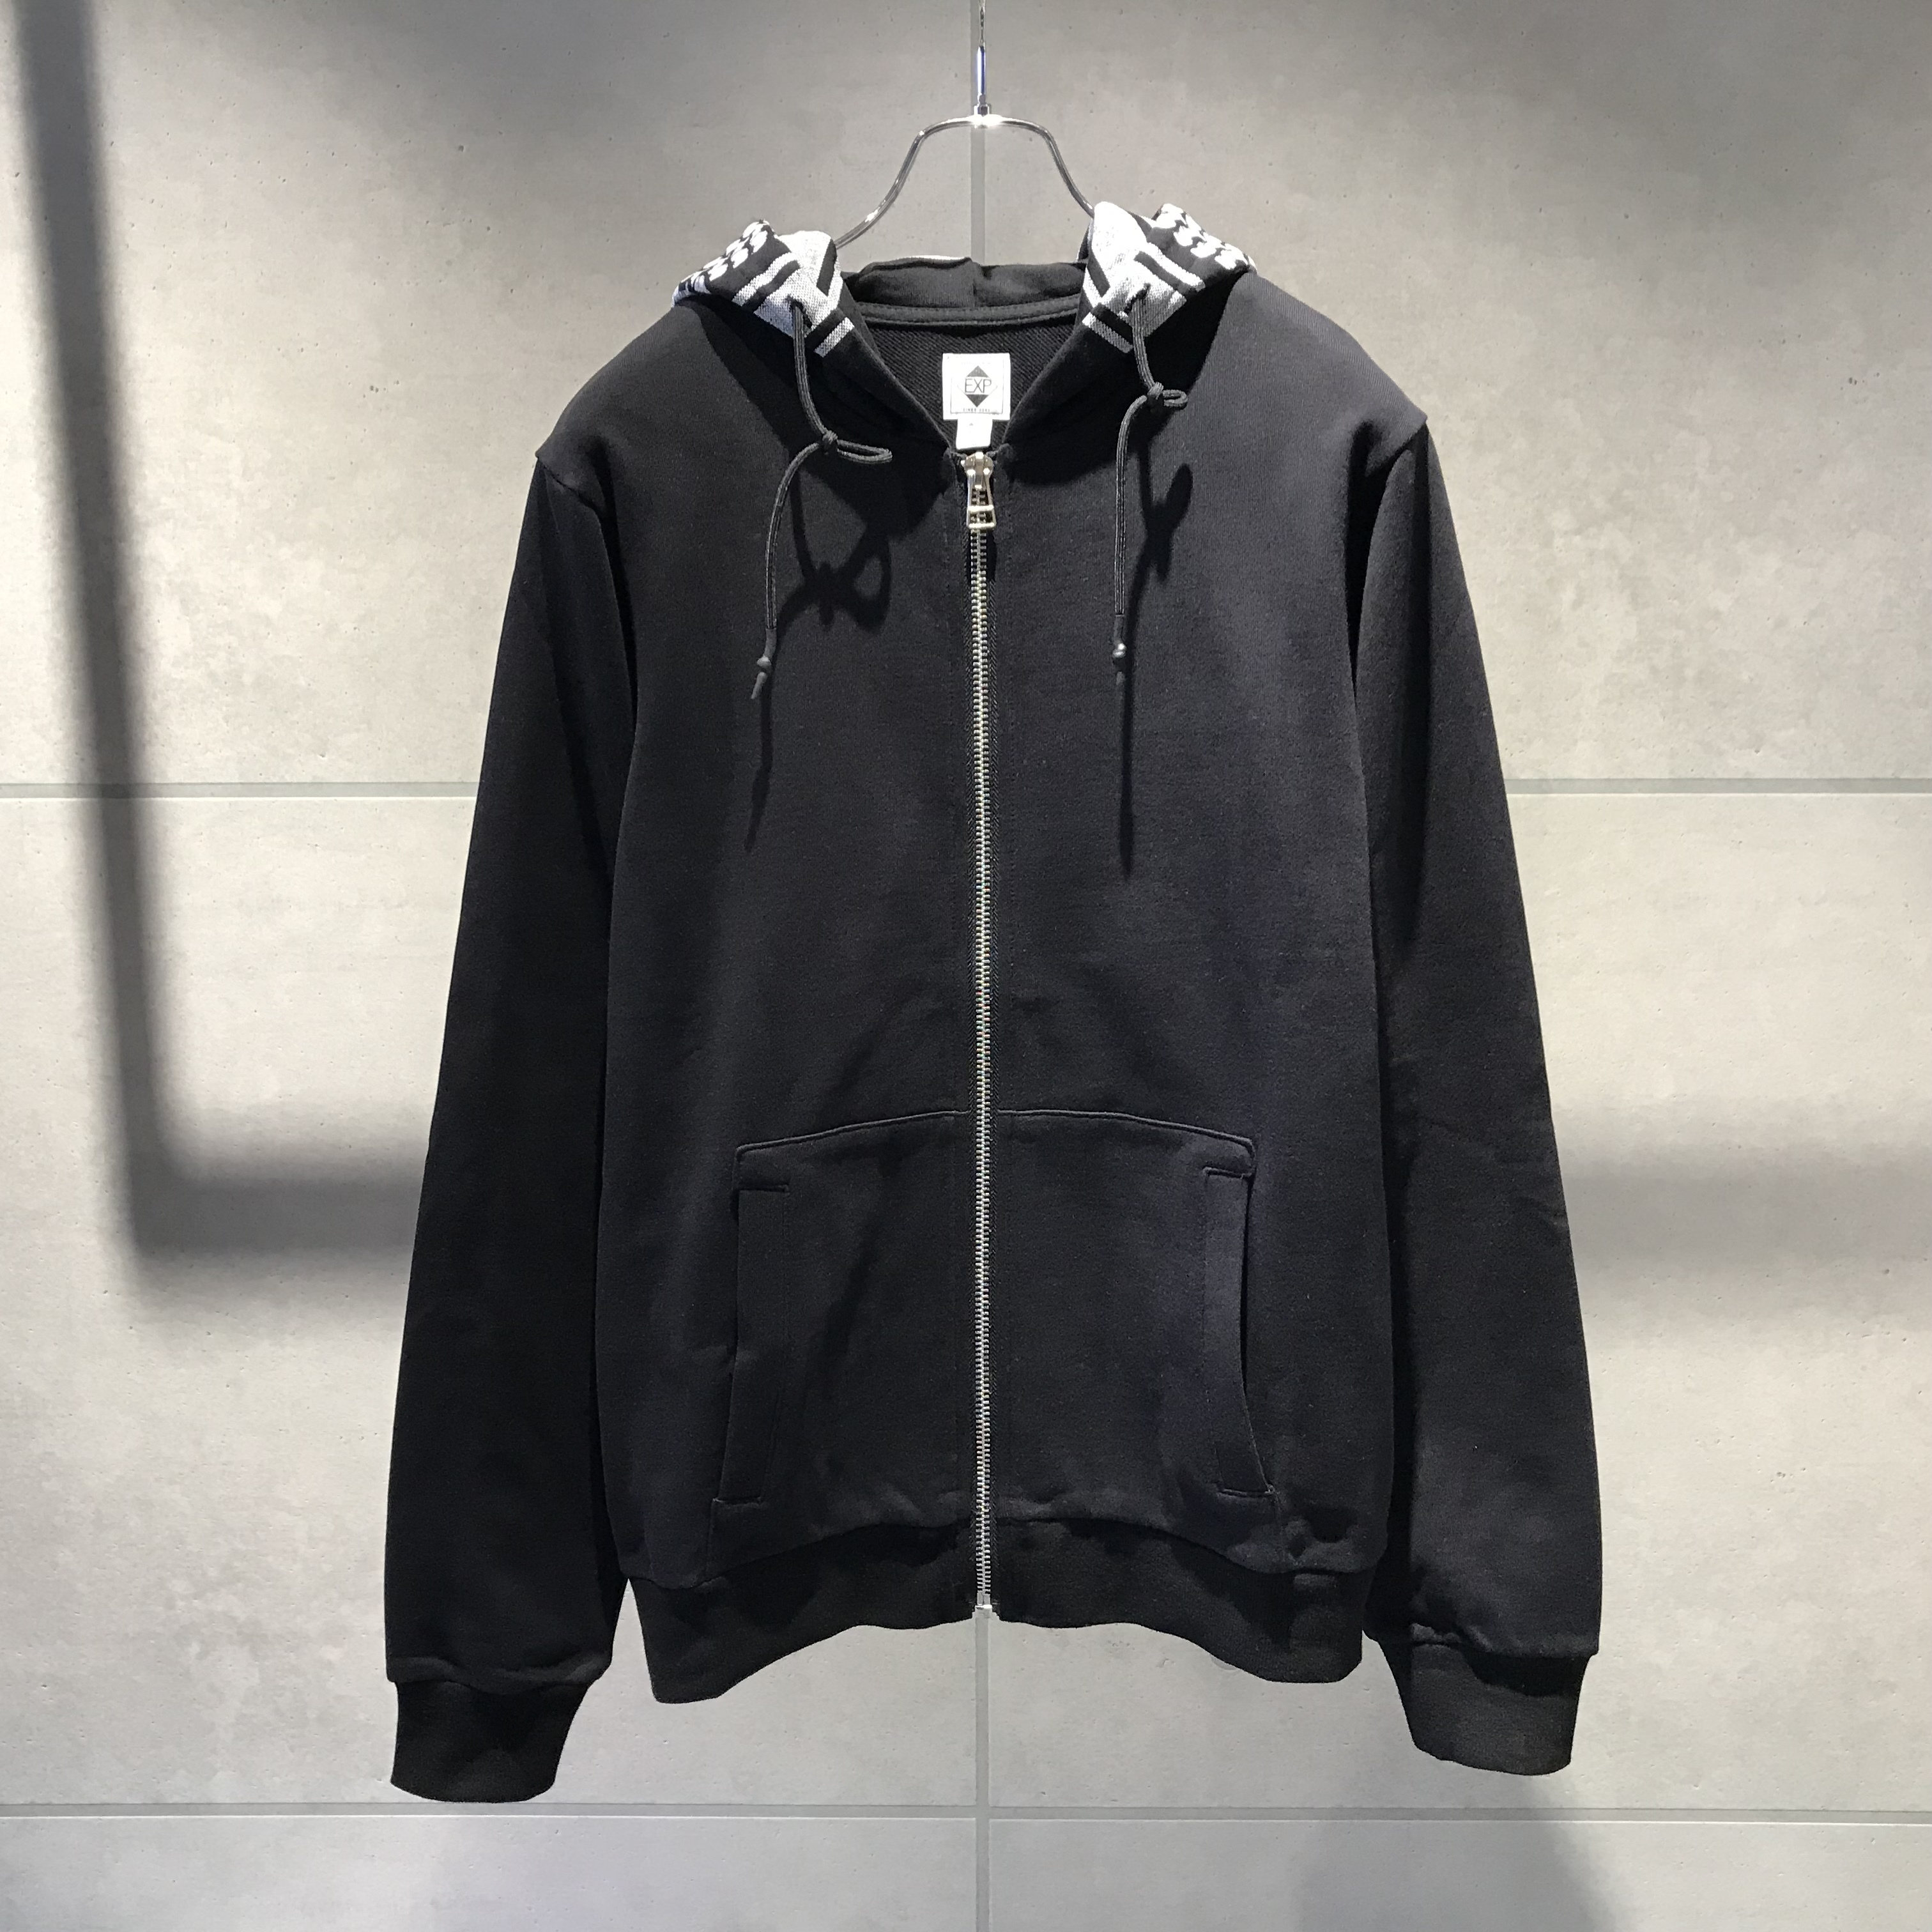 EXPANSION 83SW SHEMAGH SWEAT SHIRTS / BLACK